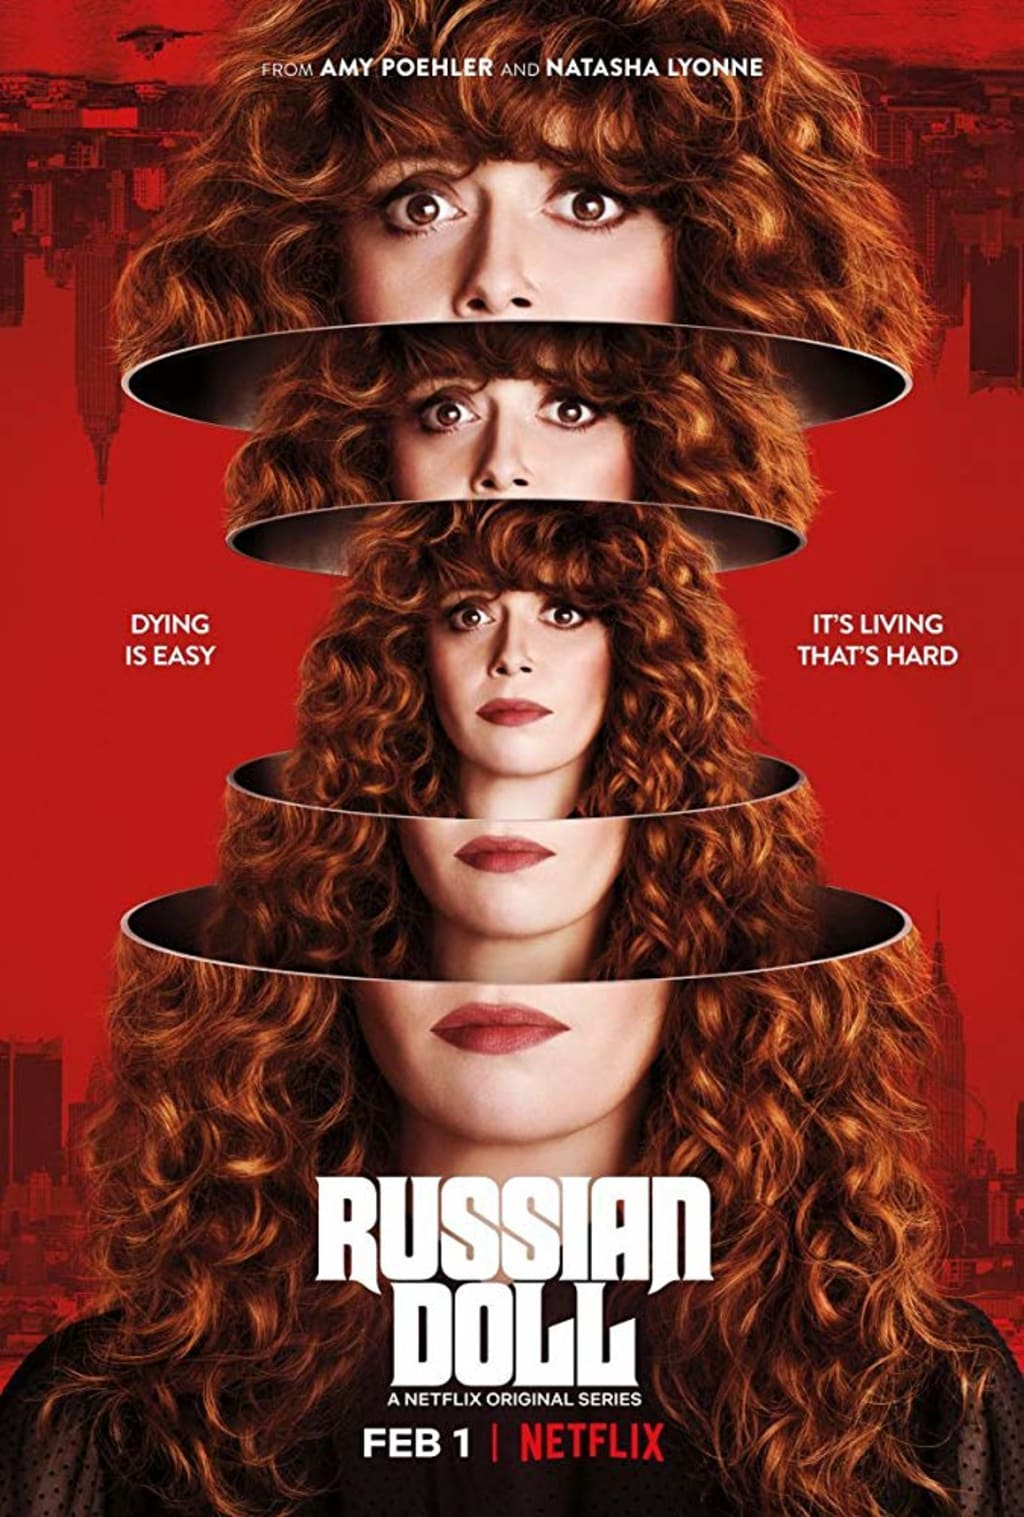 Review of 'Russian Doll'